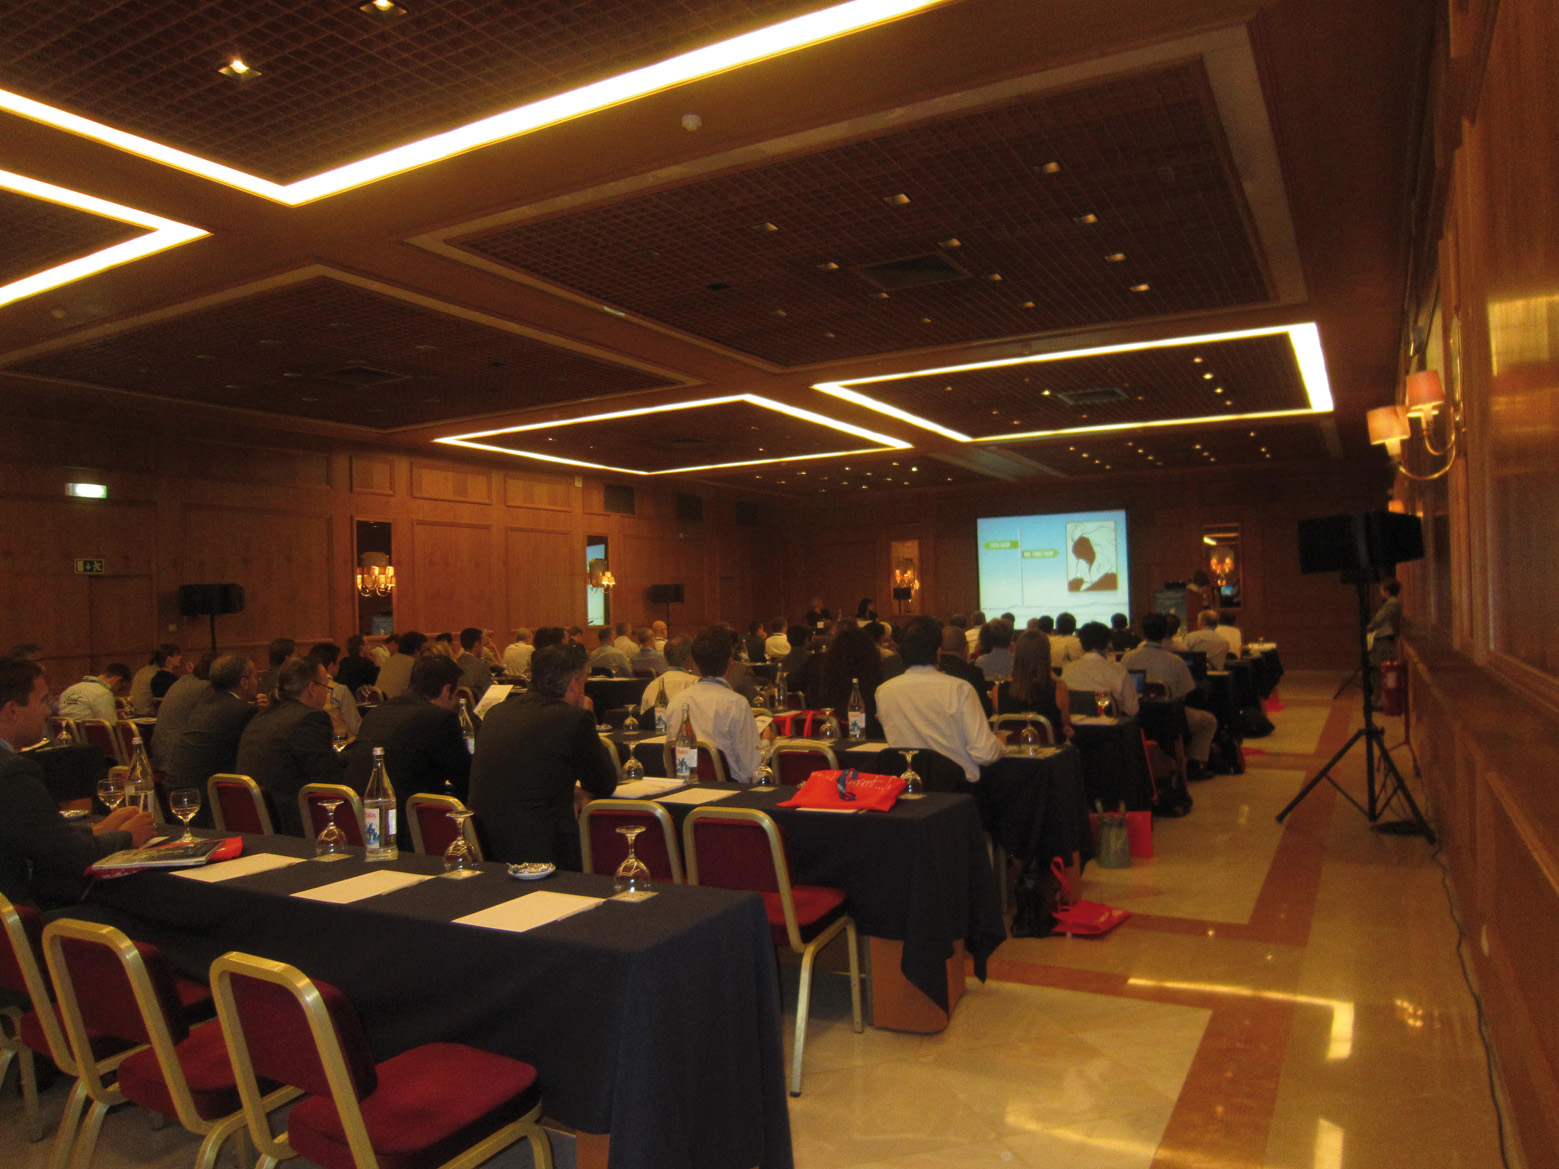 4th Symposium on Continuous Flow Reactor Technology for Industrial Applications